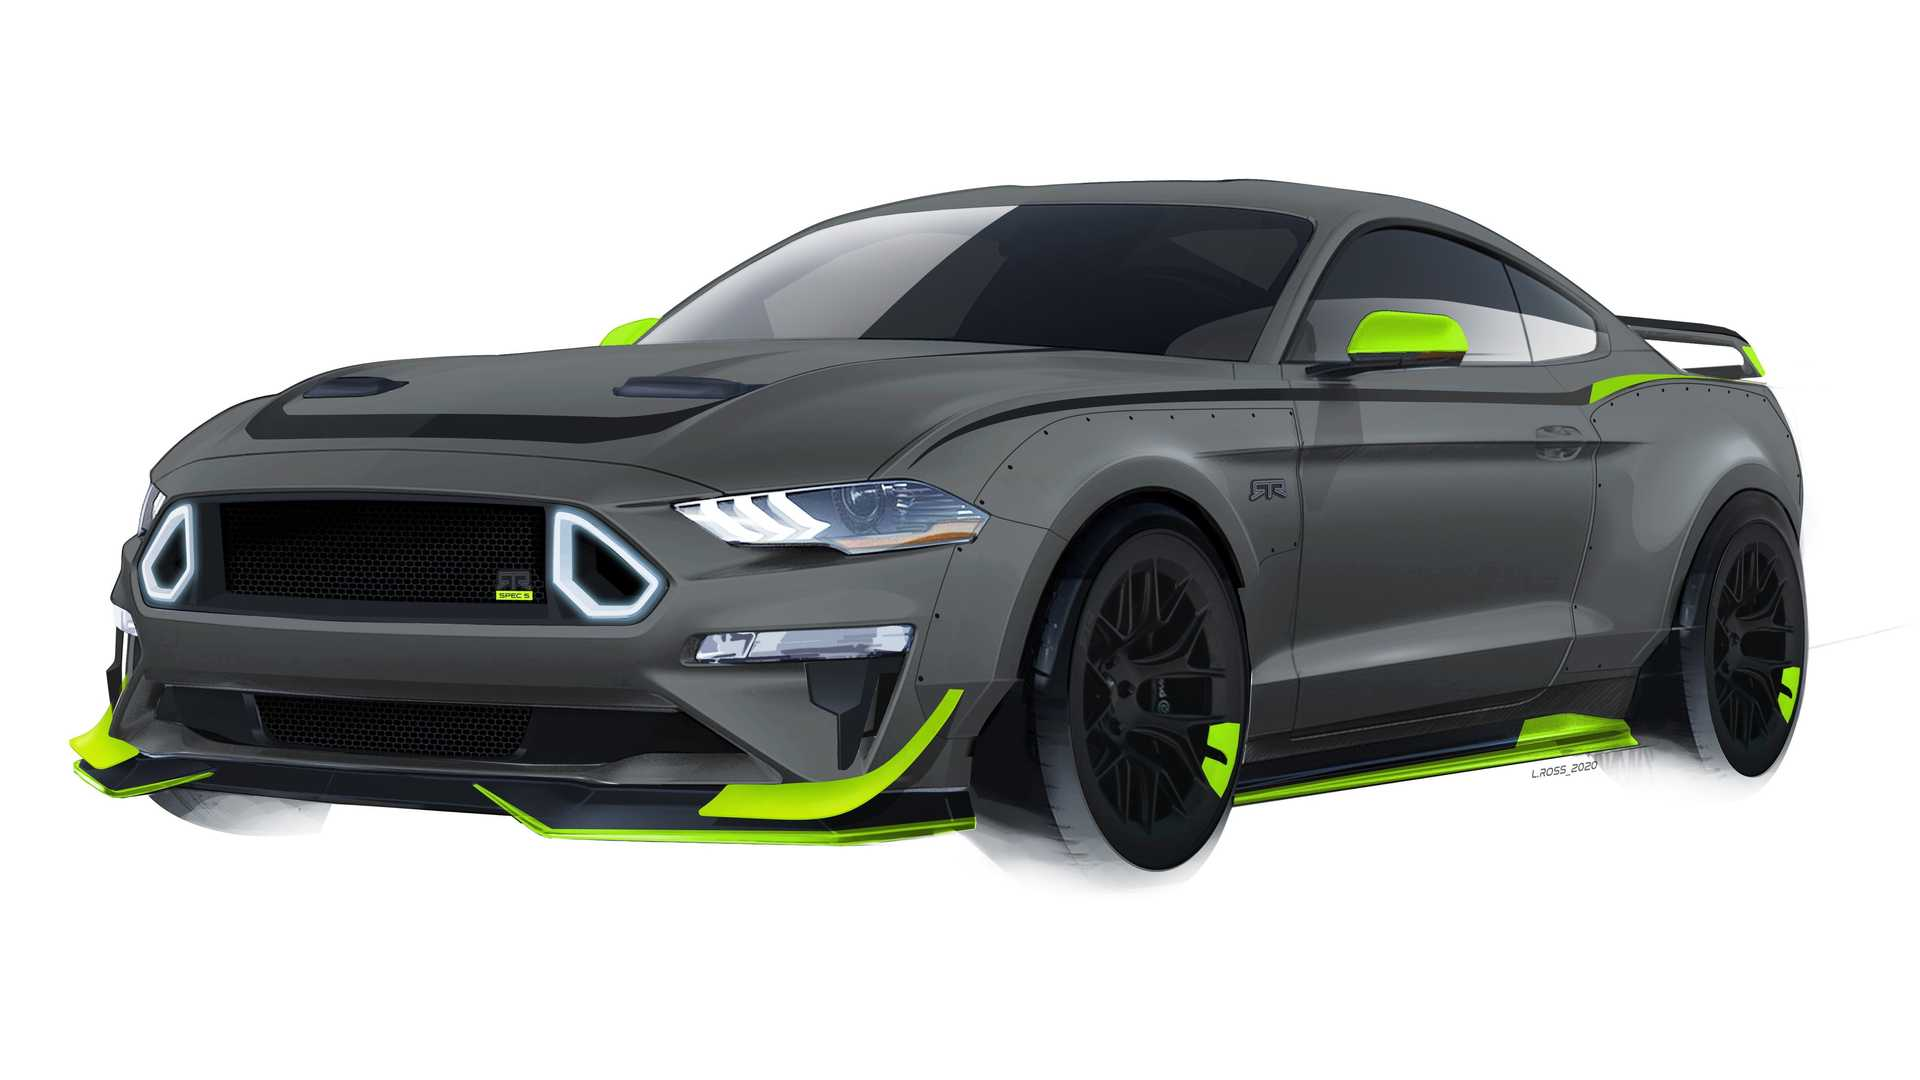 RTR Ford Mustang 10th Anniversary